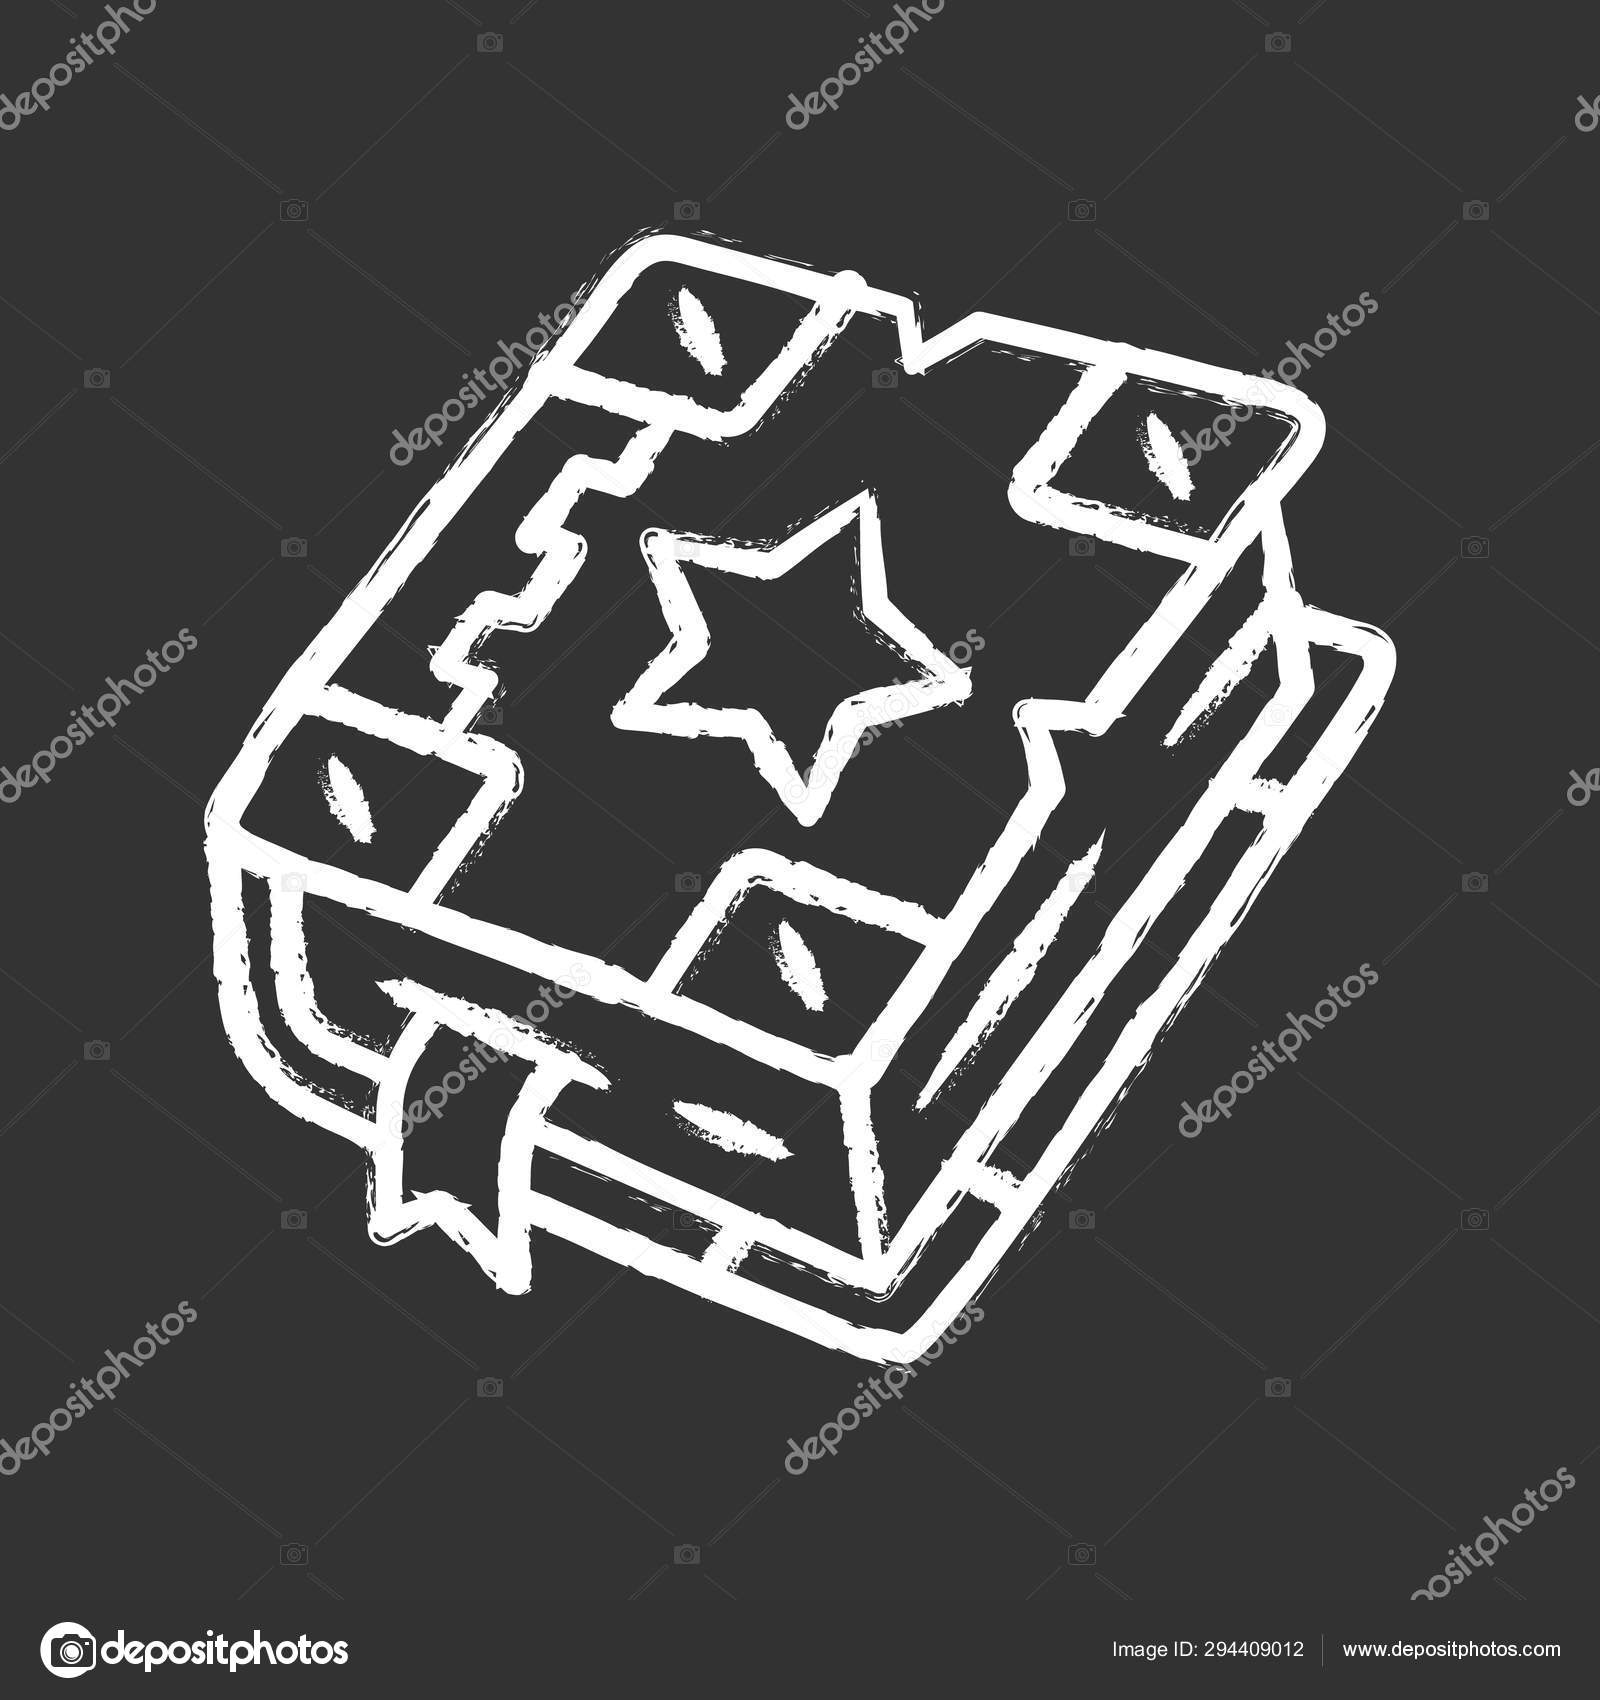 Spell Book Chalk Icon Black Magic Old Spellbook Witchcraft Sorcery Ancient Item Magic Potion Recipes Antique Grimoire Fairytale Fantasy And Mystery Book Isolated Vector Chalkboard Illustration Stock Vector C Bsd 294409012